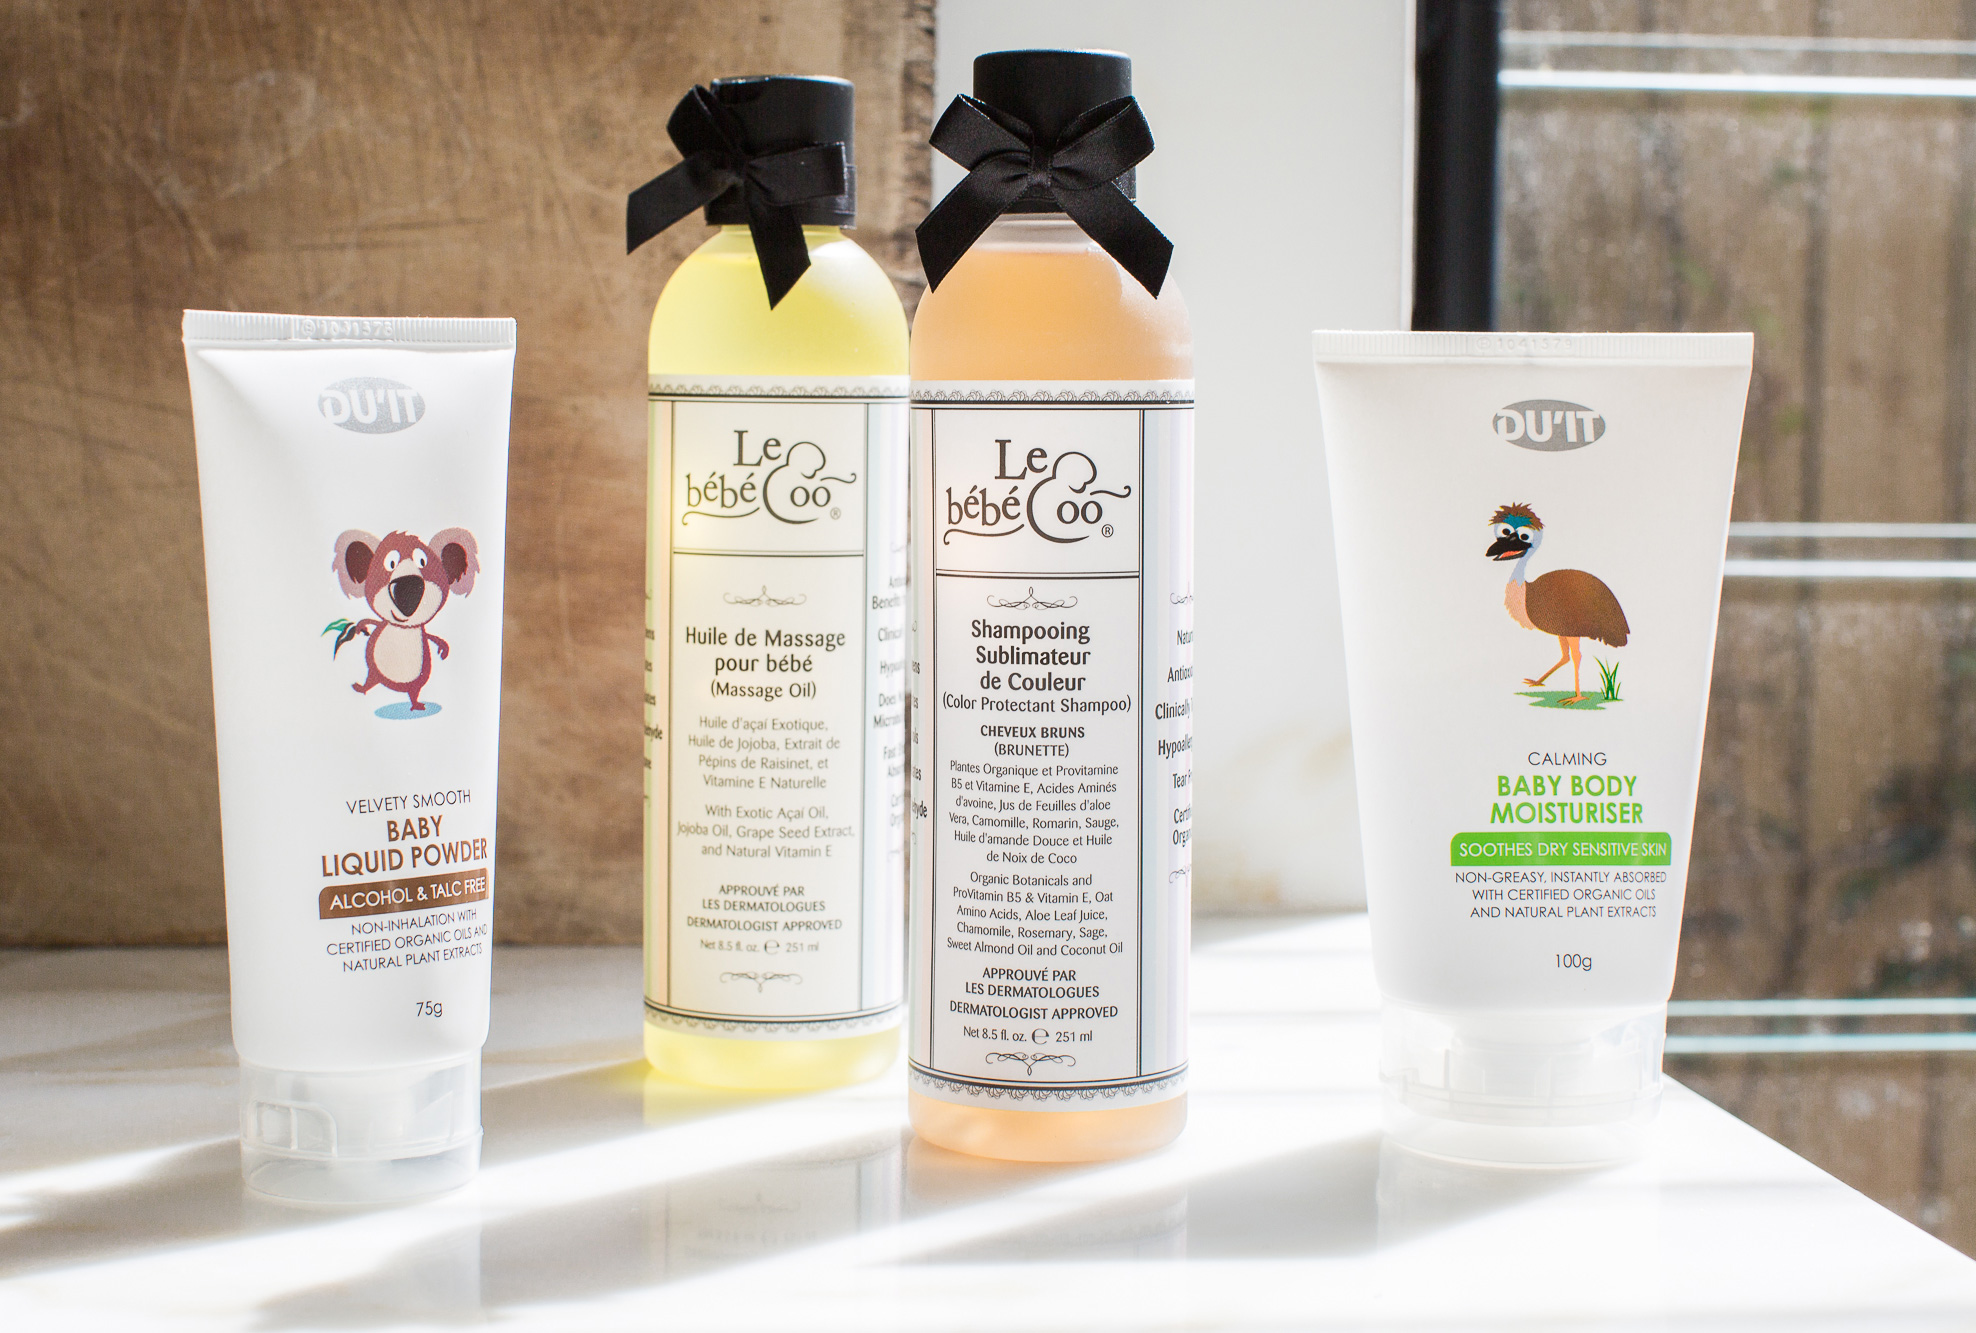 Bath time with your bub: 3 baby beauty brands we're loving